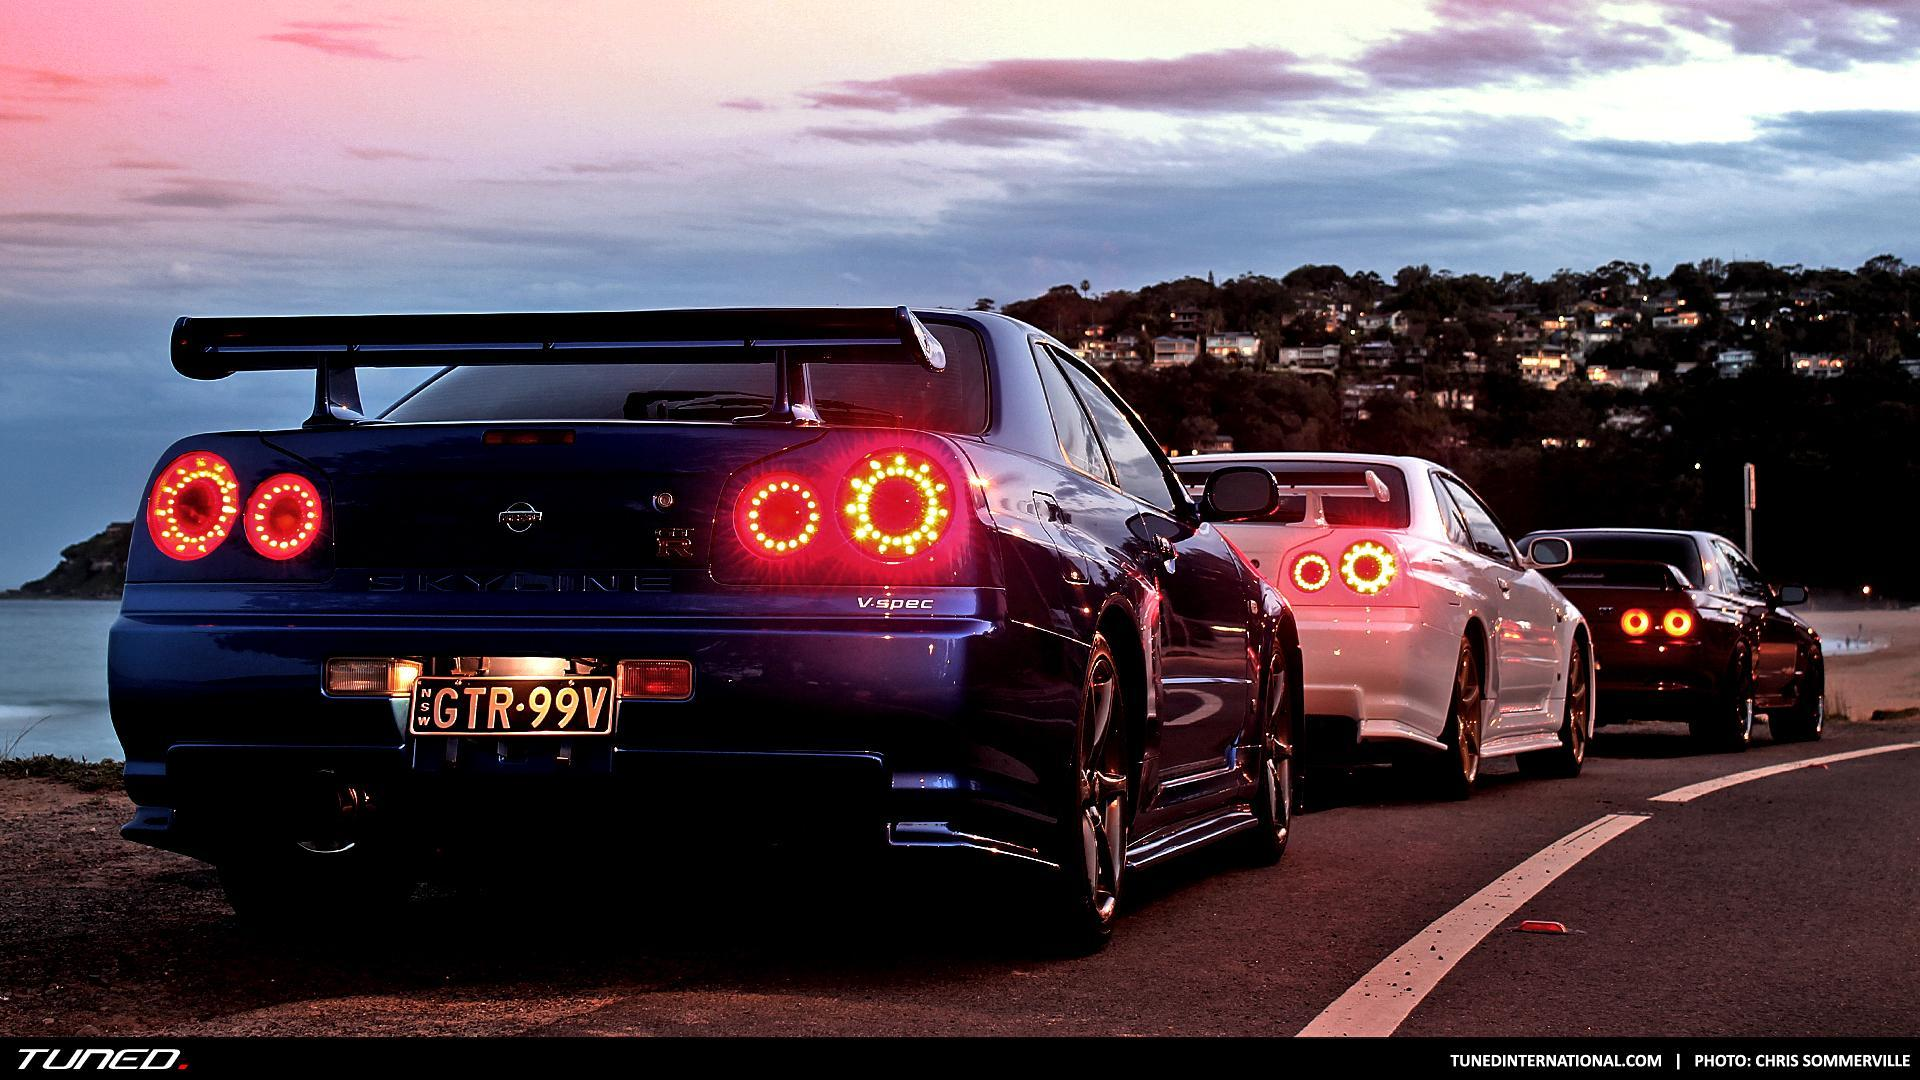 Free Download Nissan Skyline Cars Hd Desktop Wallpaper Widescreen